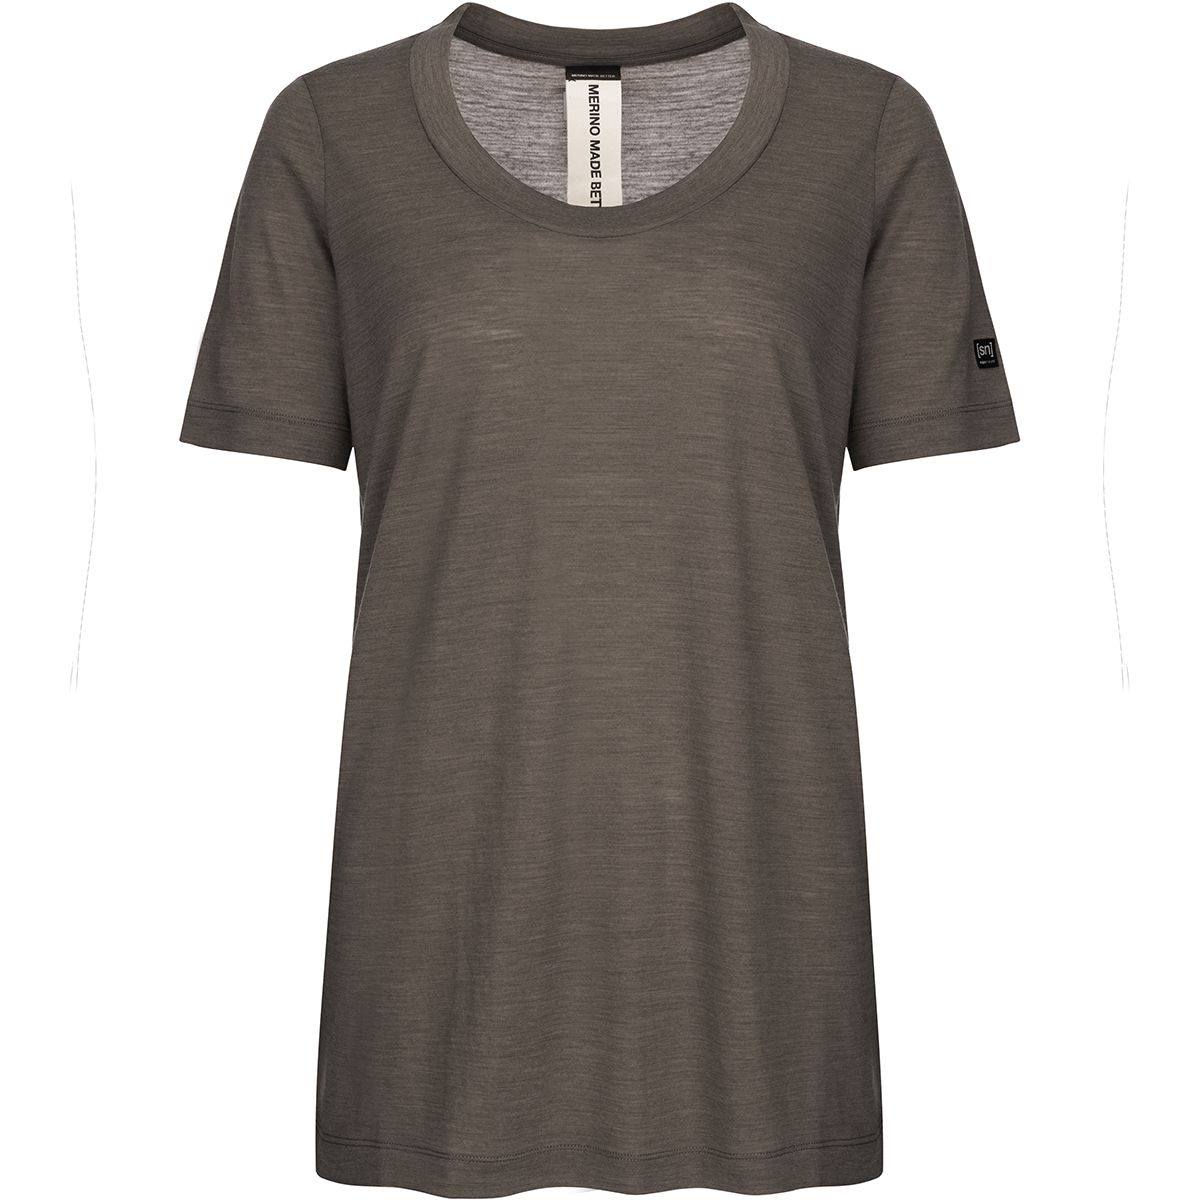 Super.Natural Damen Oversize T-Shirt (Größe S, Braun)